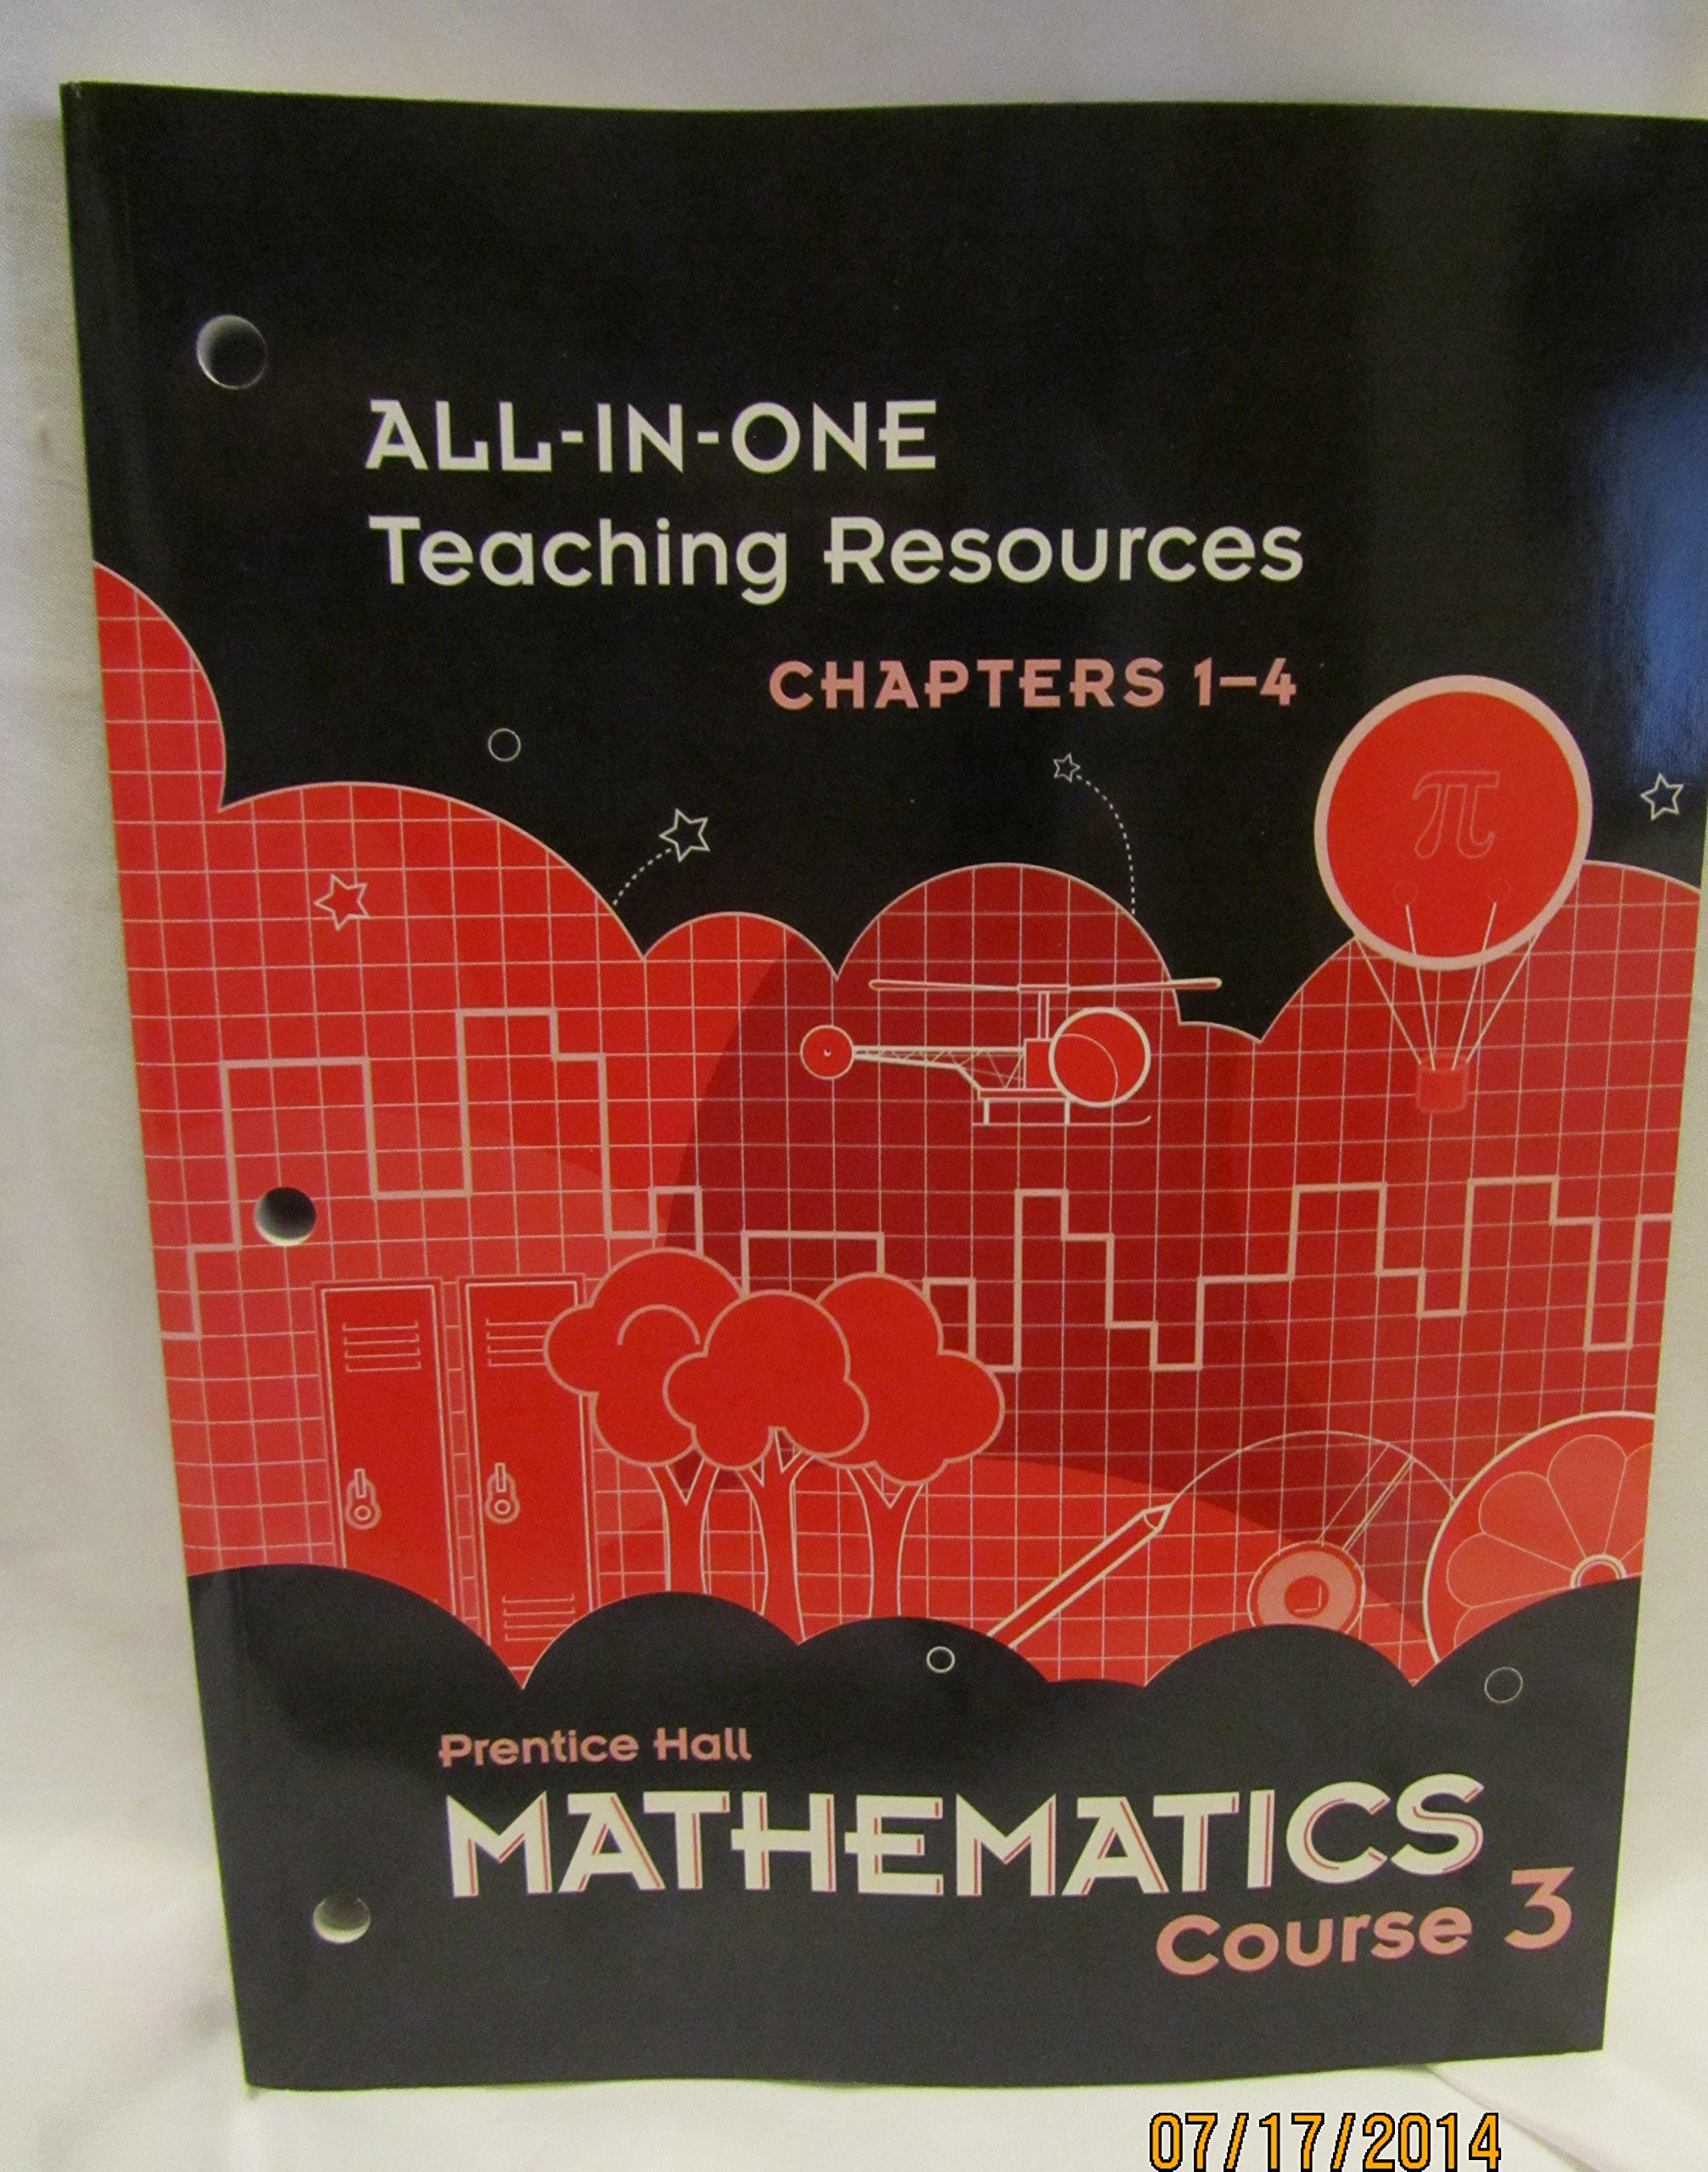 Prentice Hall Mathematics Course 3 All-in-One Teaching Resources Chapters 1-4 ISBN 0133721310 by Pearson pdf epub